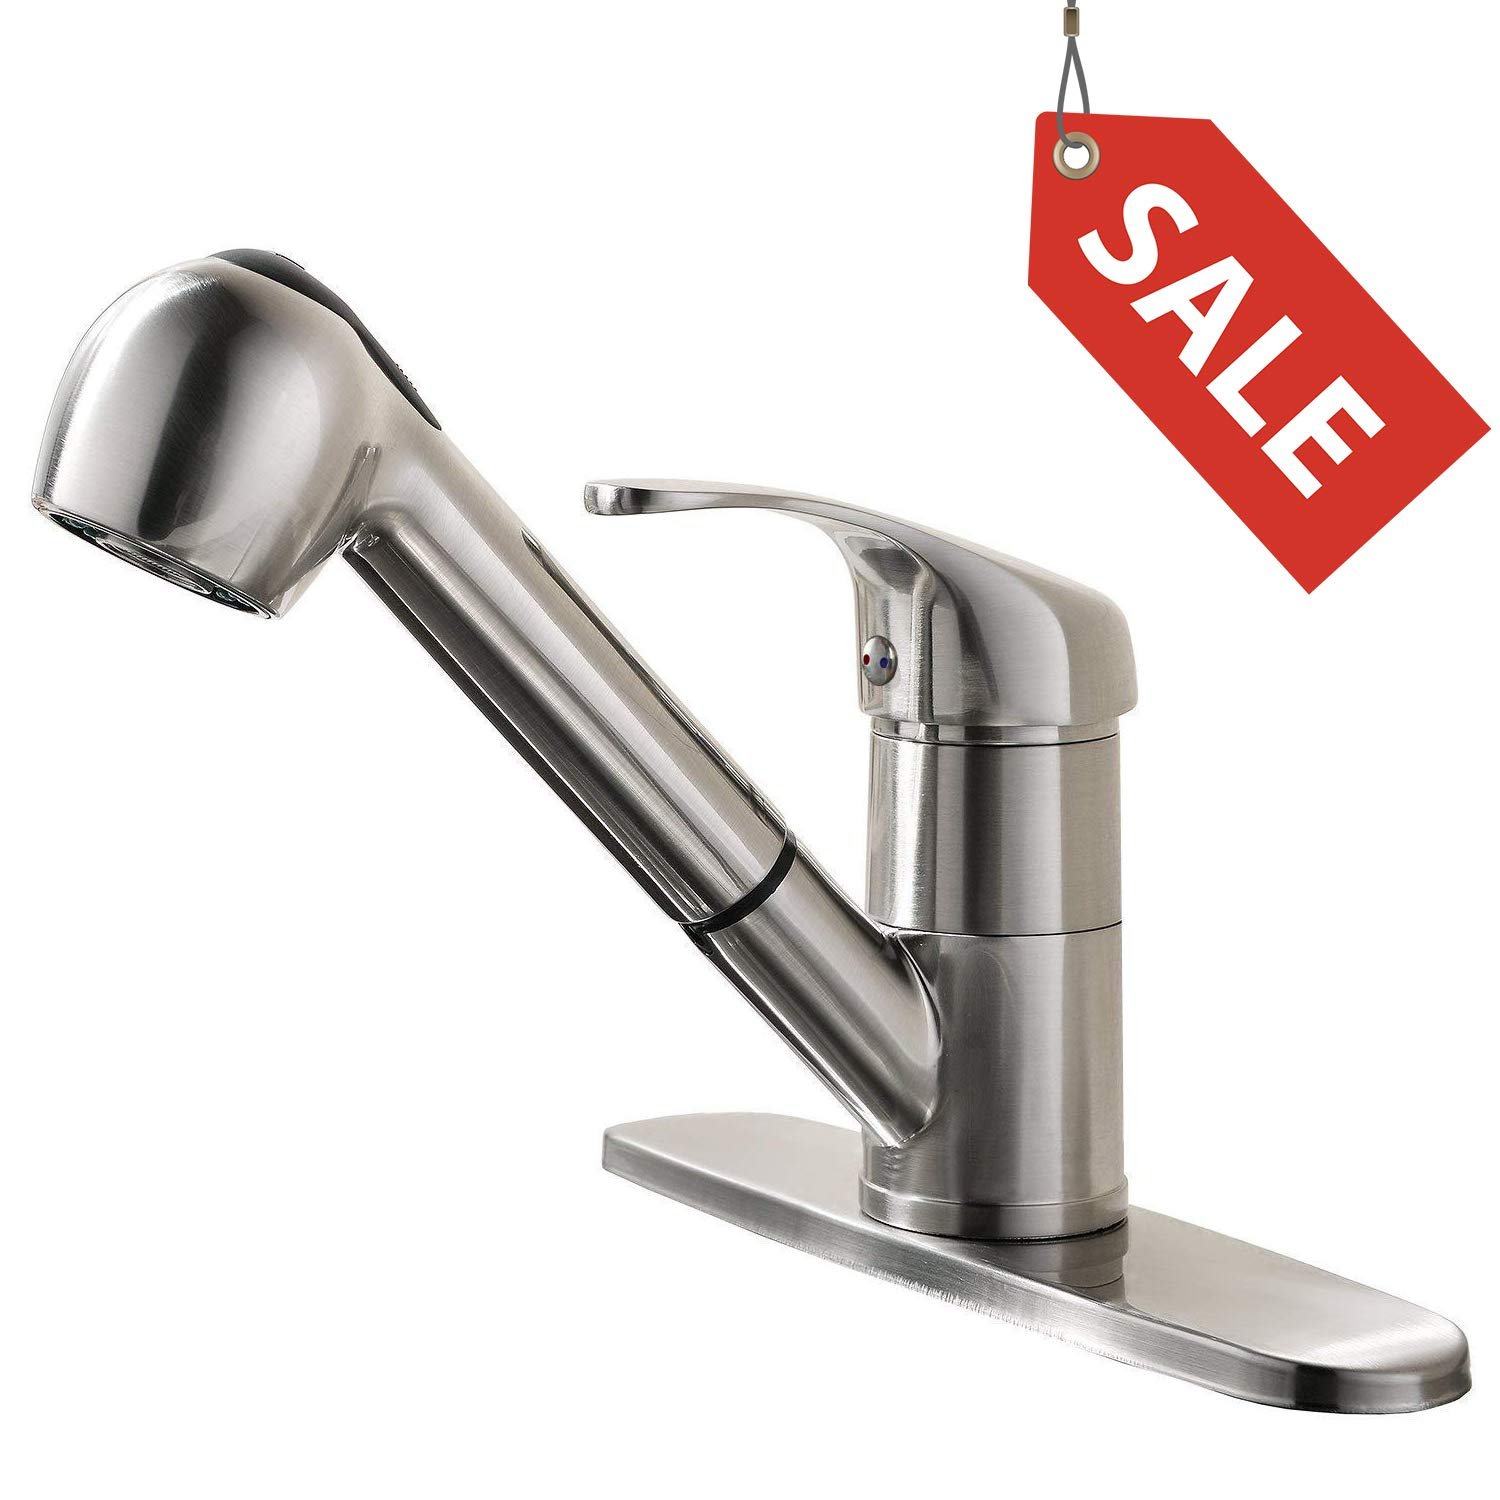 GOOAO Single Handle Pull Out Sprayer Kitchen Faucet with Deck Plate, Polished Brush Nickel by GOOAO (Image #1)